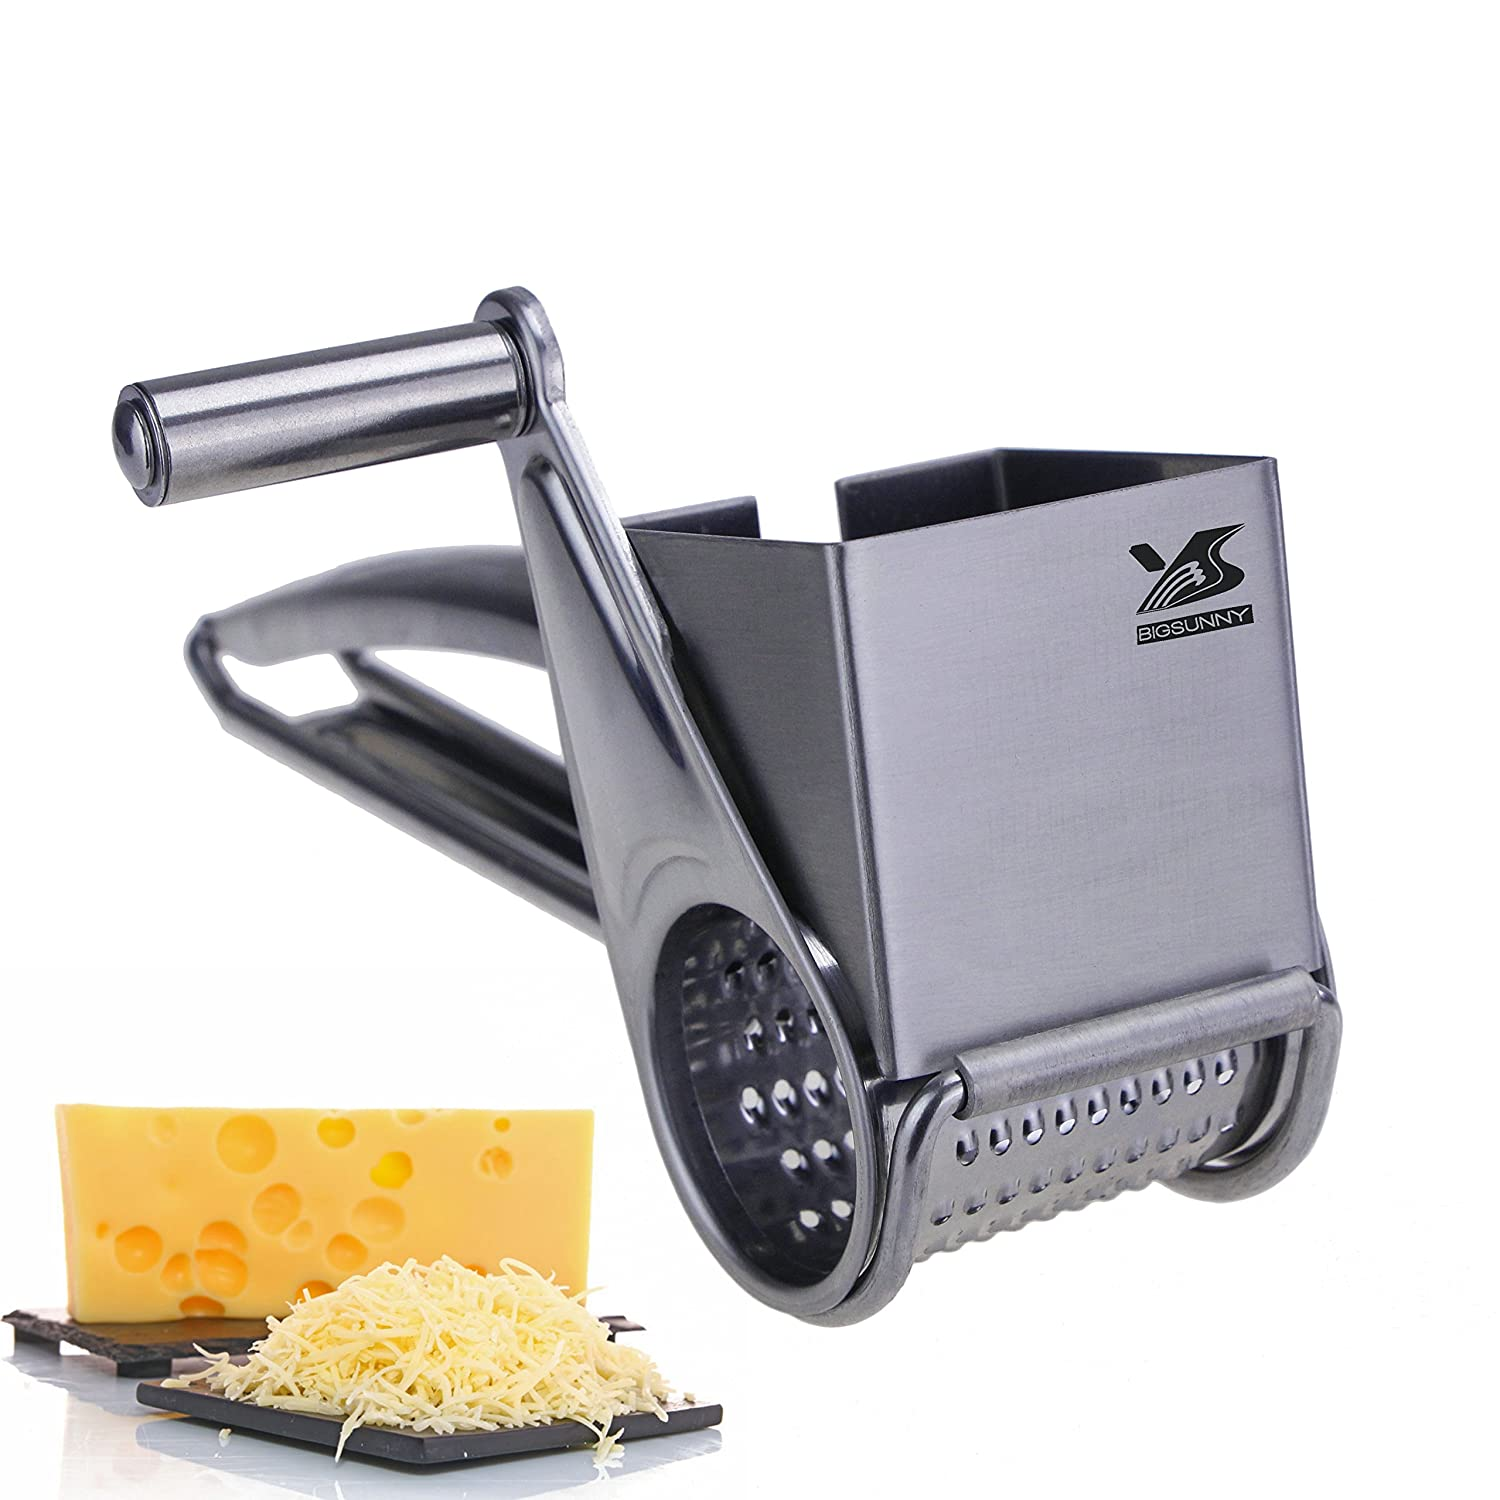 BIGSUNNY Rotary Cheese Grater, Updated Version Stainless Steel Vegetable Cheese Cutter Slicer Shredder, Oversized and Thickened MSY BIGSUNNY VC1006